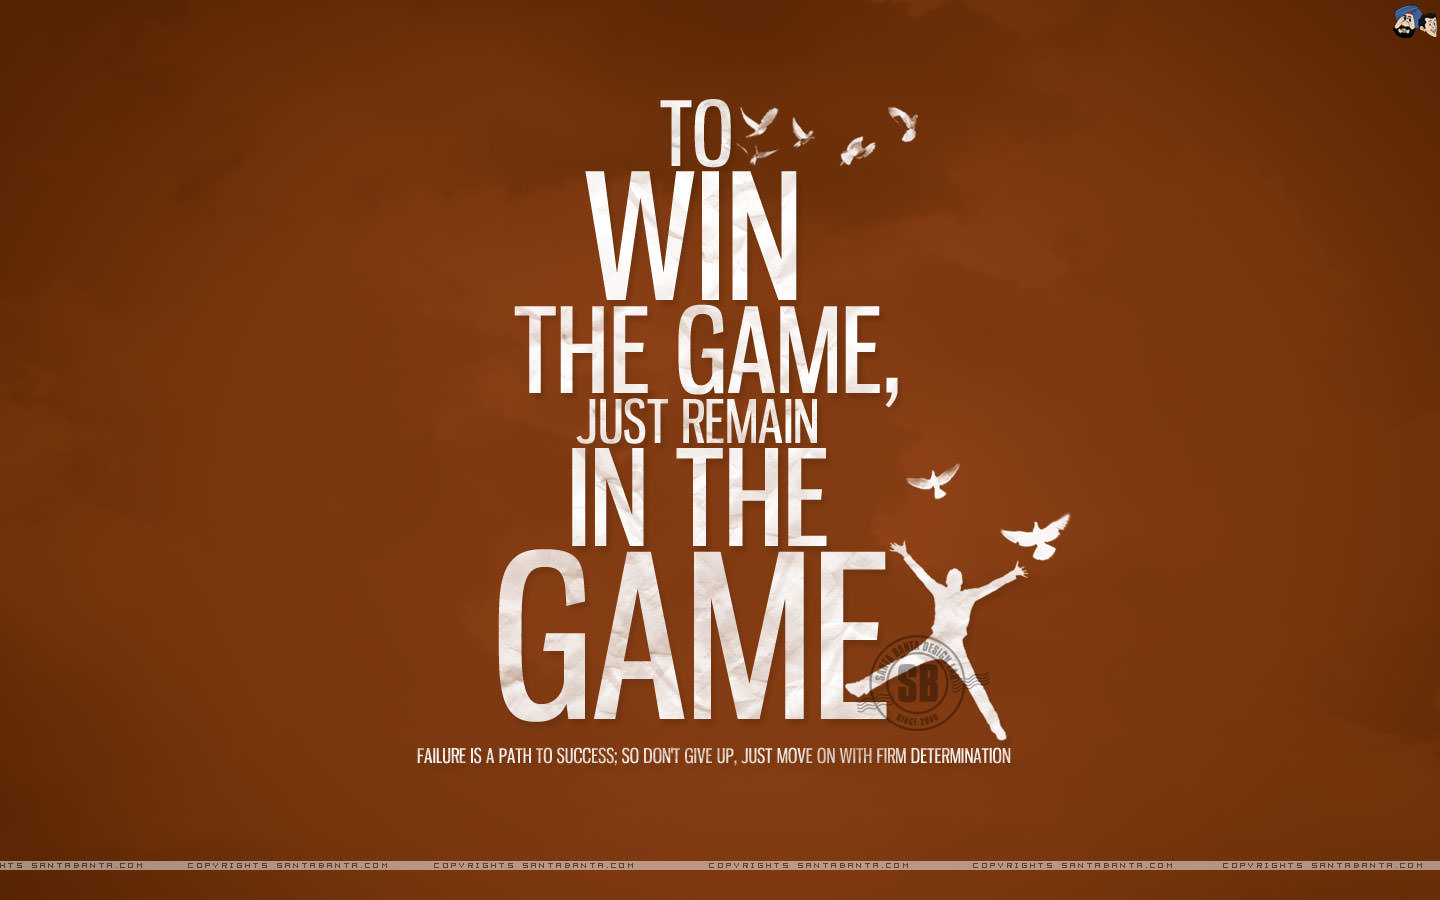 To Win The Game, Just Remain In The Game. Failure Is A